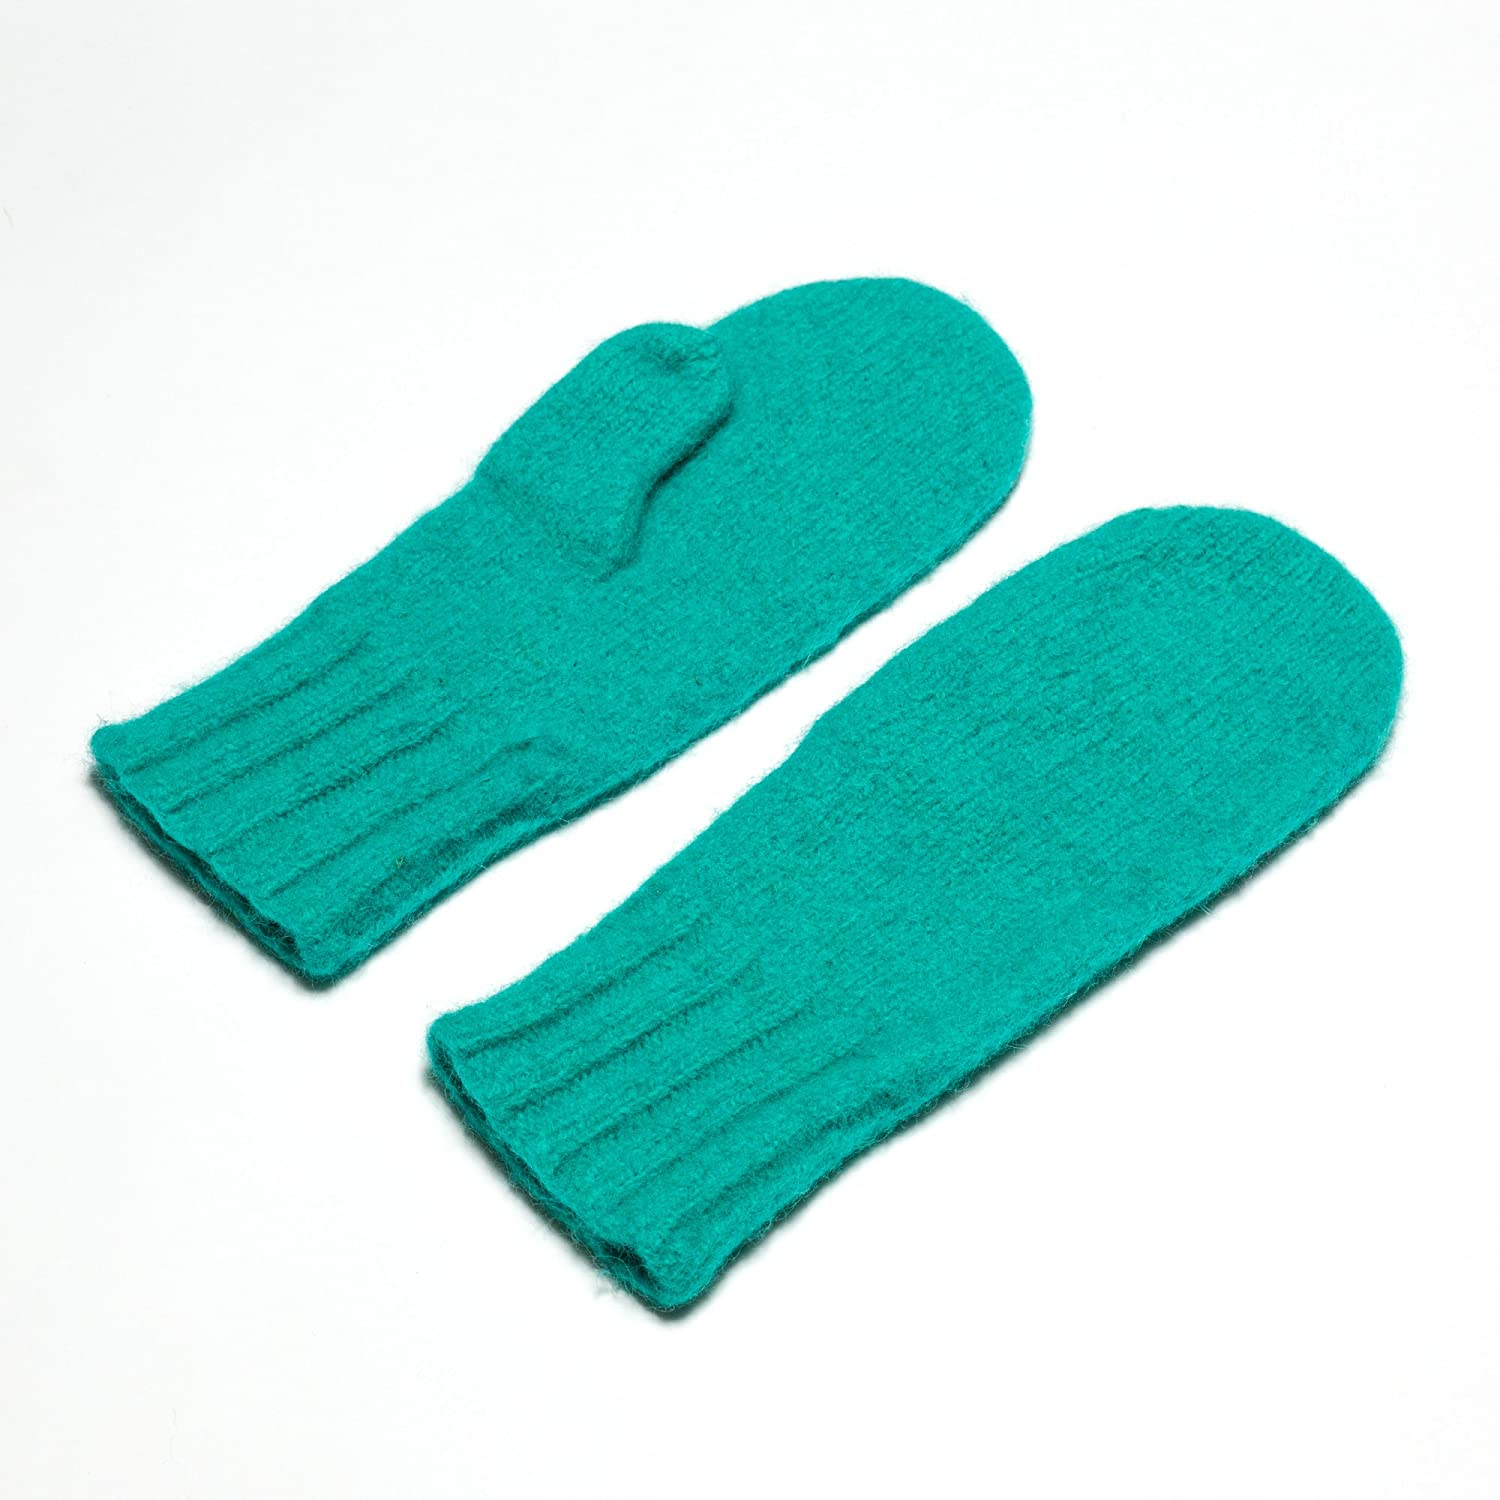 Dachstein Woolwear 100/% Extra Warm Austrian Boiled Wool Alpine Mittens in Many Vibrant Colors